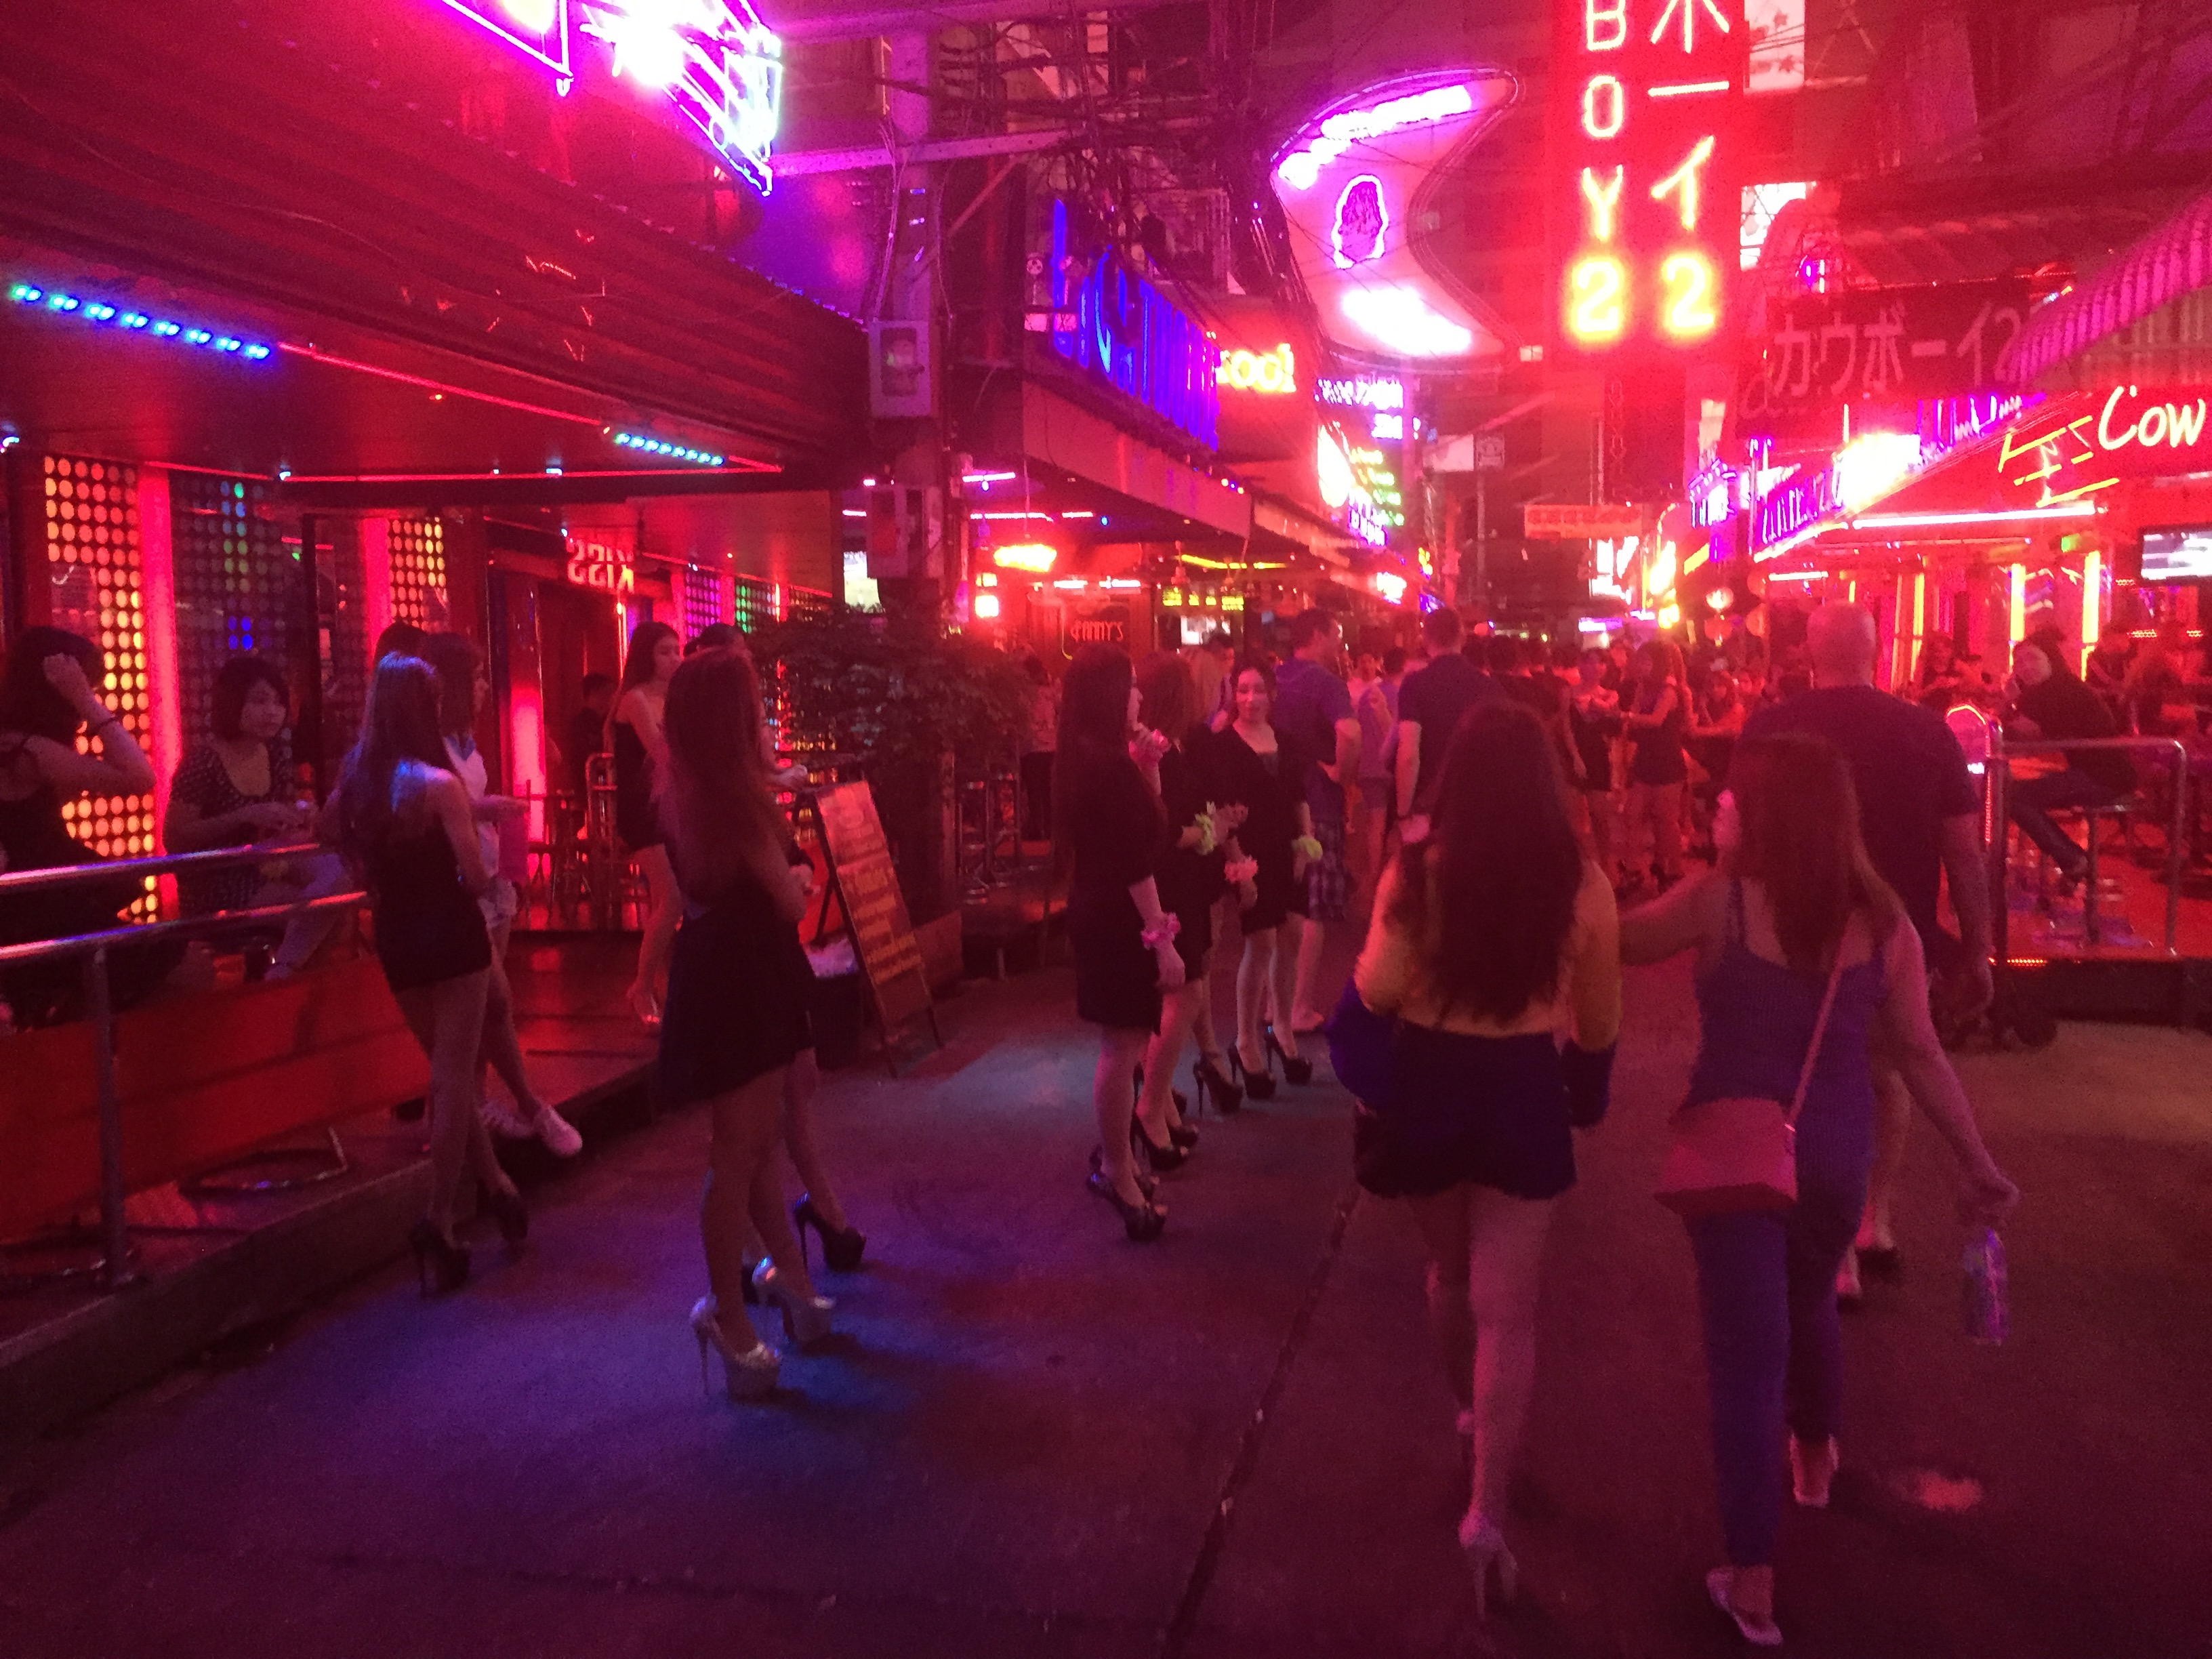 The red lights are back on Soi Cowboy after being dimmed for a month